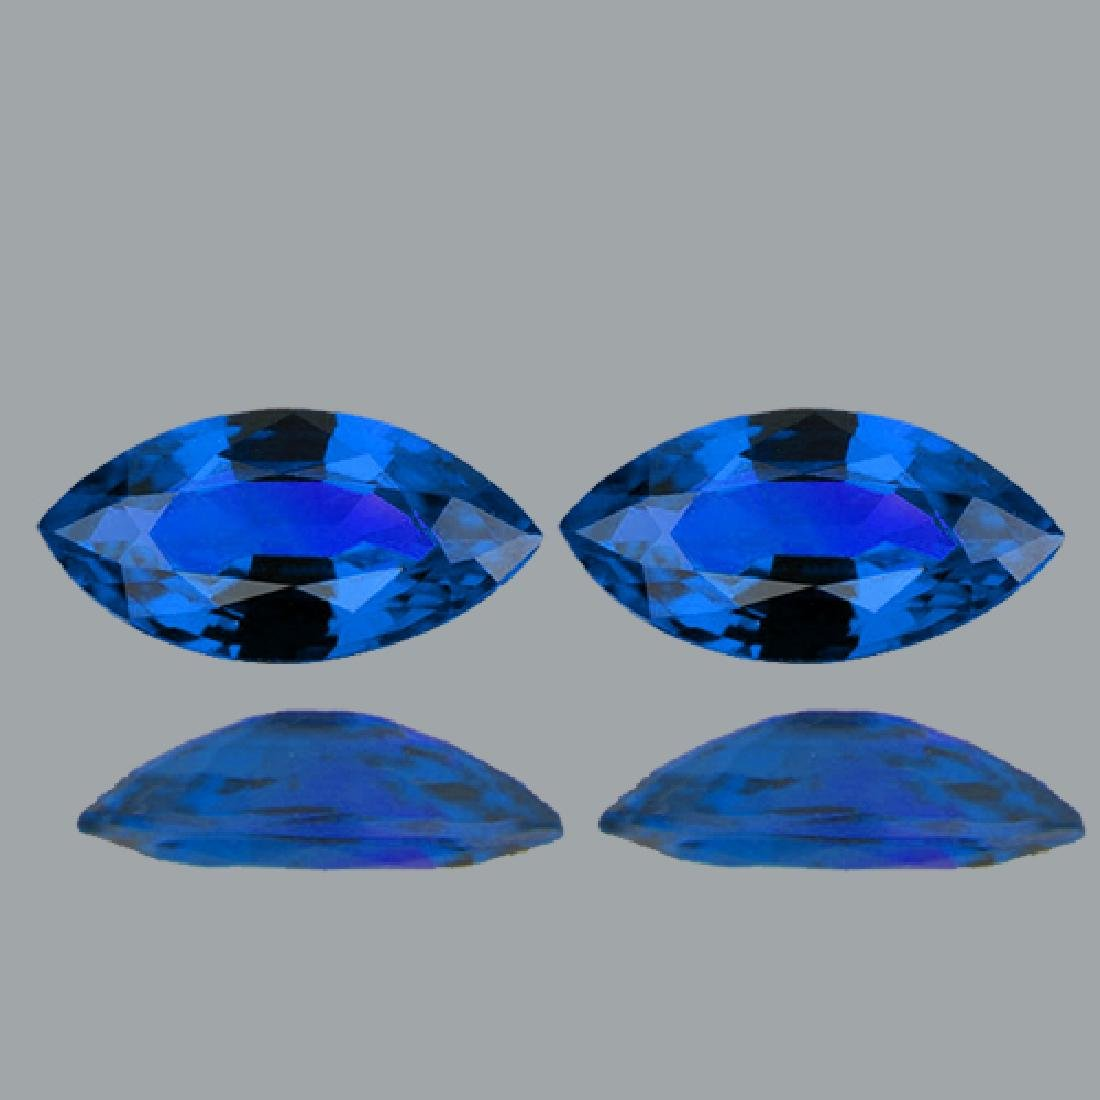 Natural Rare Intense Blue Hauyne 4 x 2 MM - VVS